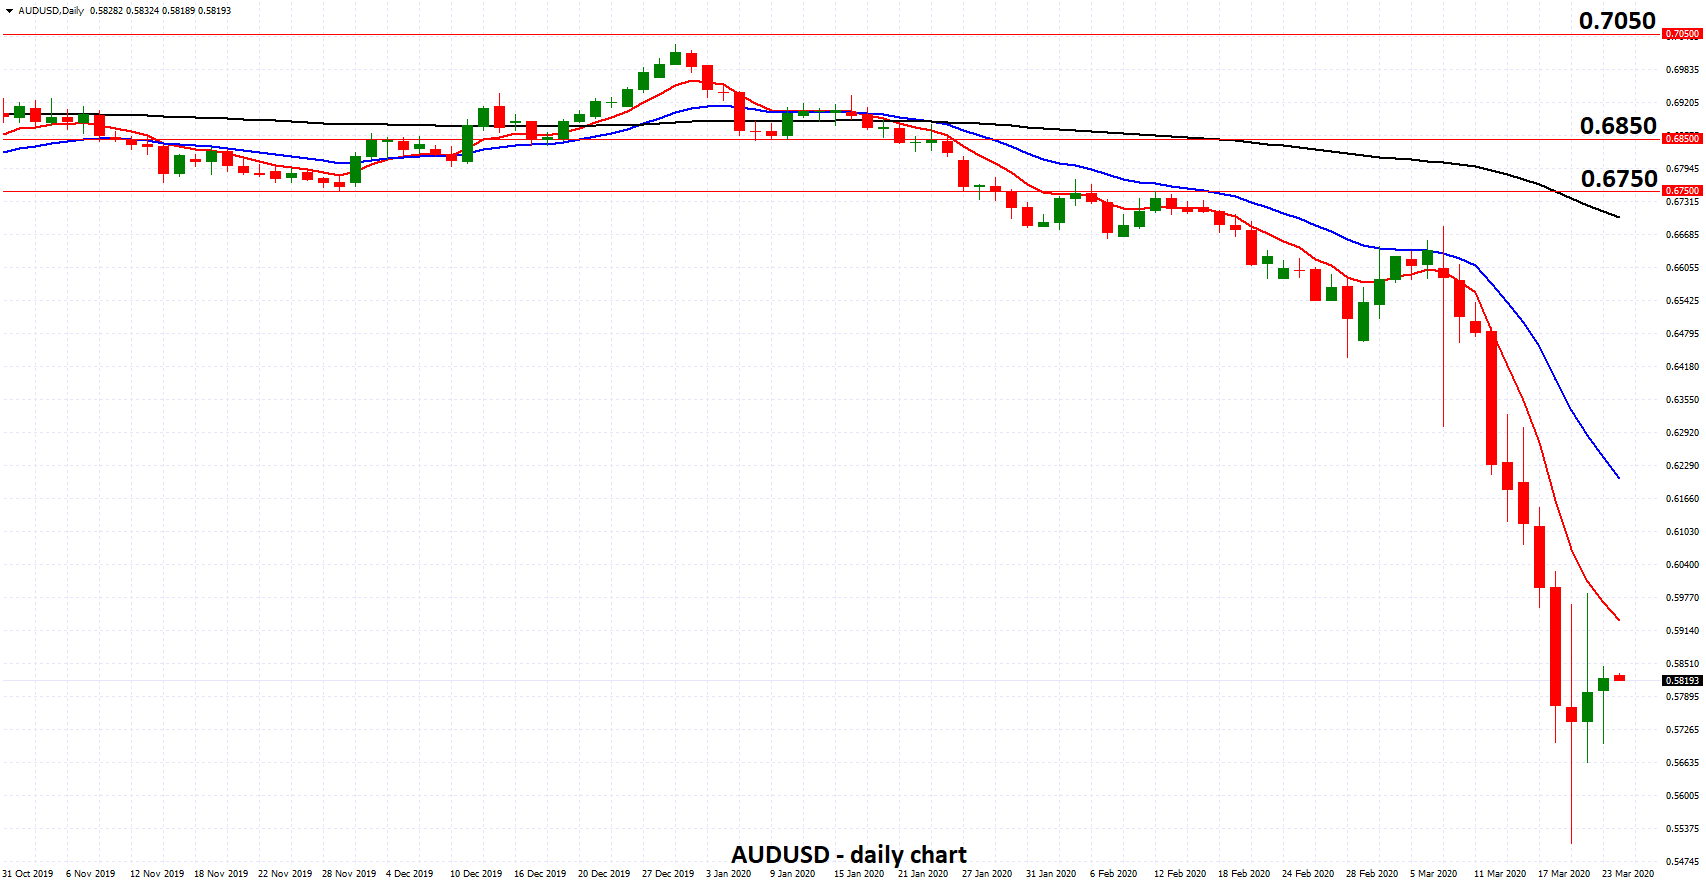 AUDUSD - Consolidates Around 0.58 after Emergency RBA Rate Cut